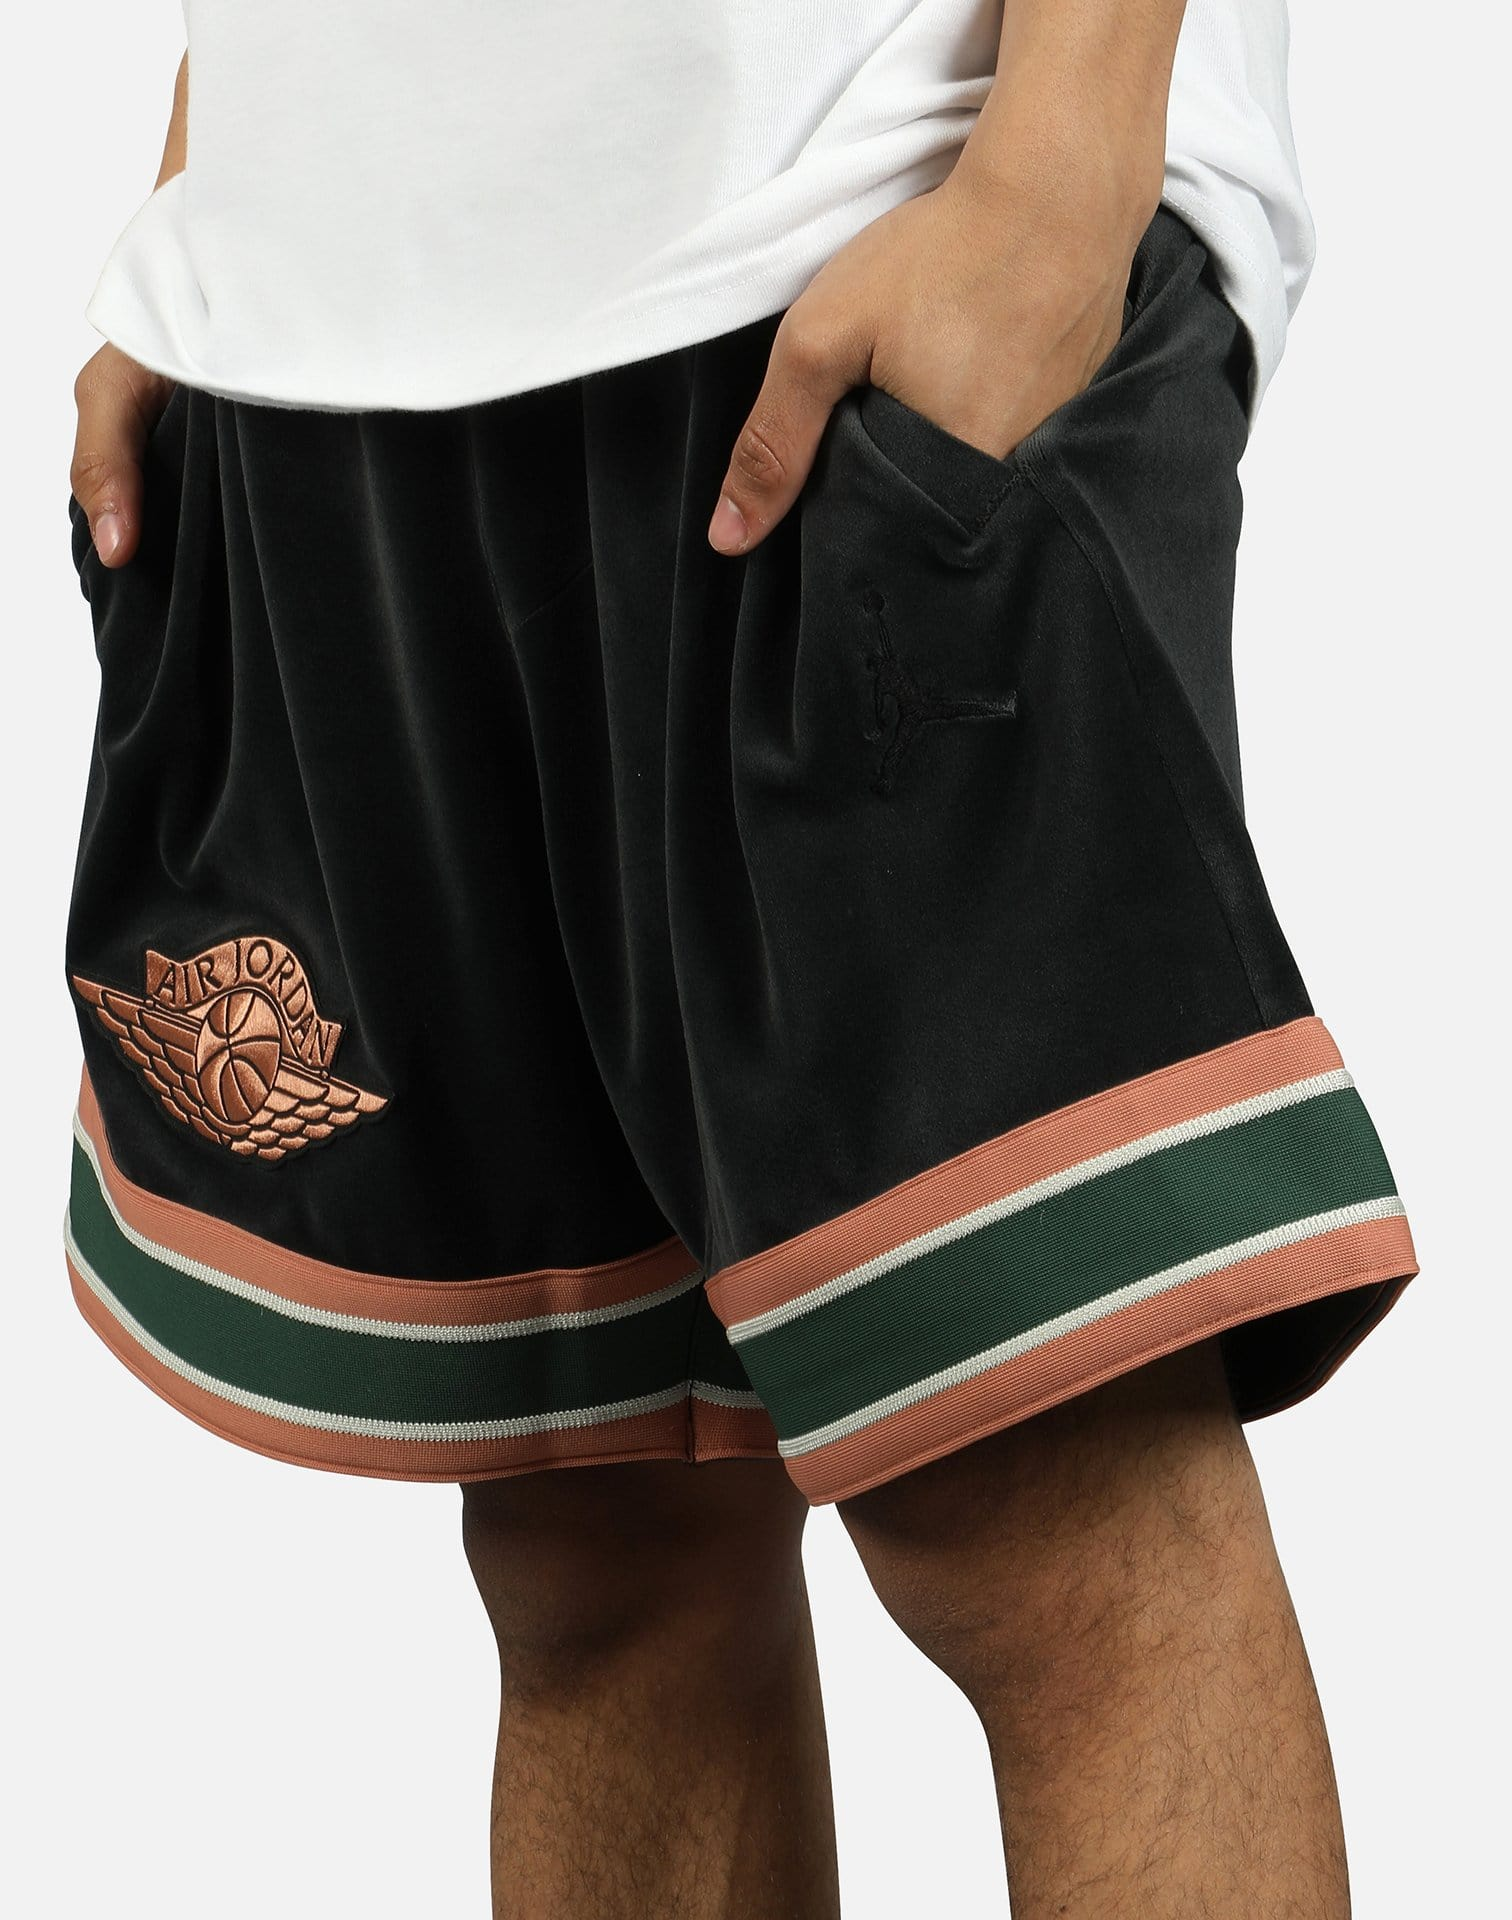 Jordan Men's Gold Chain Shorts